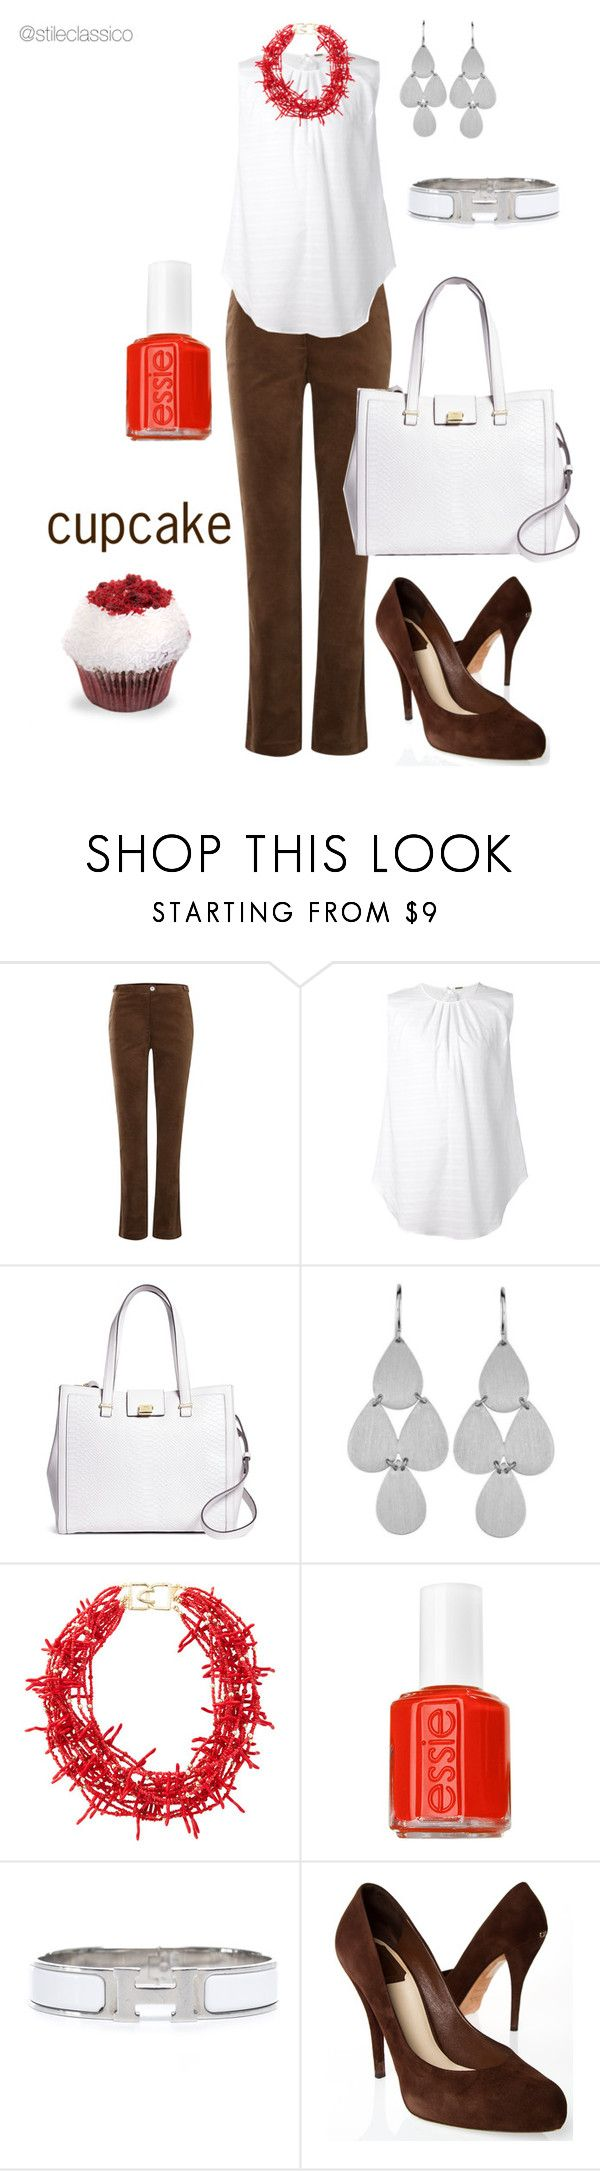 """""""Cupcake"""" by stileclassico ❤ liked on Polyvore featuring Tulchan, ADAM, Brooks Brothers, Kenneth Jay Lane, Essie, Hermès, Christian Dior, contest and cupcake"""